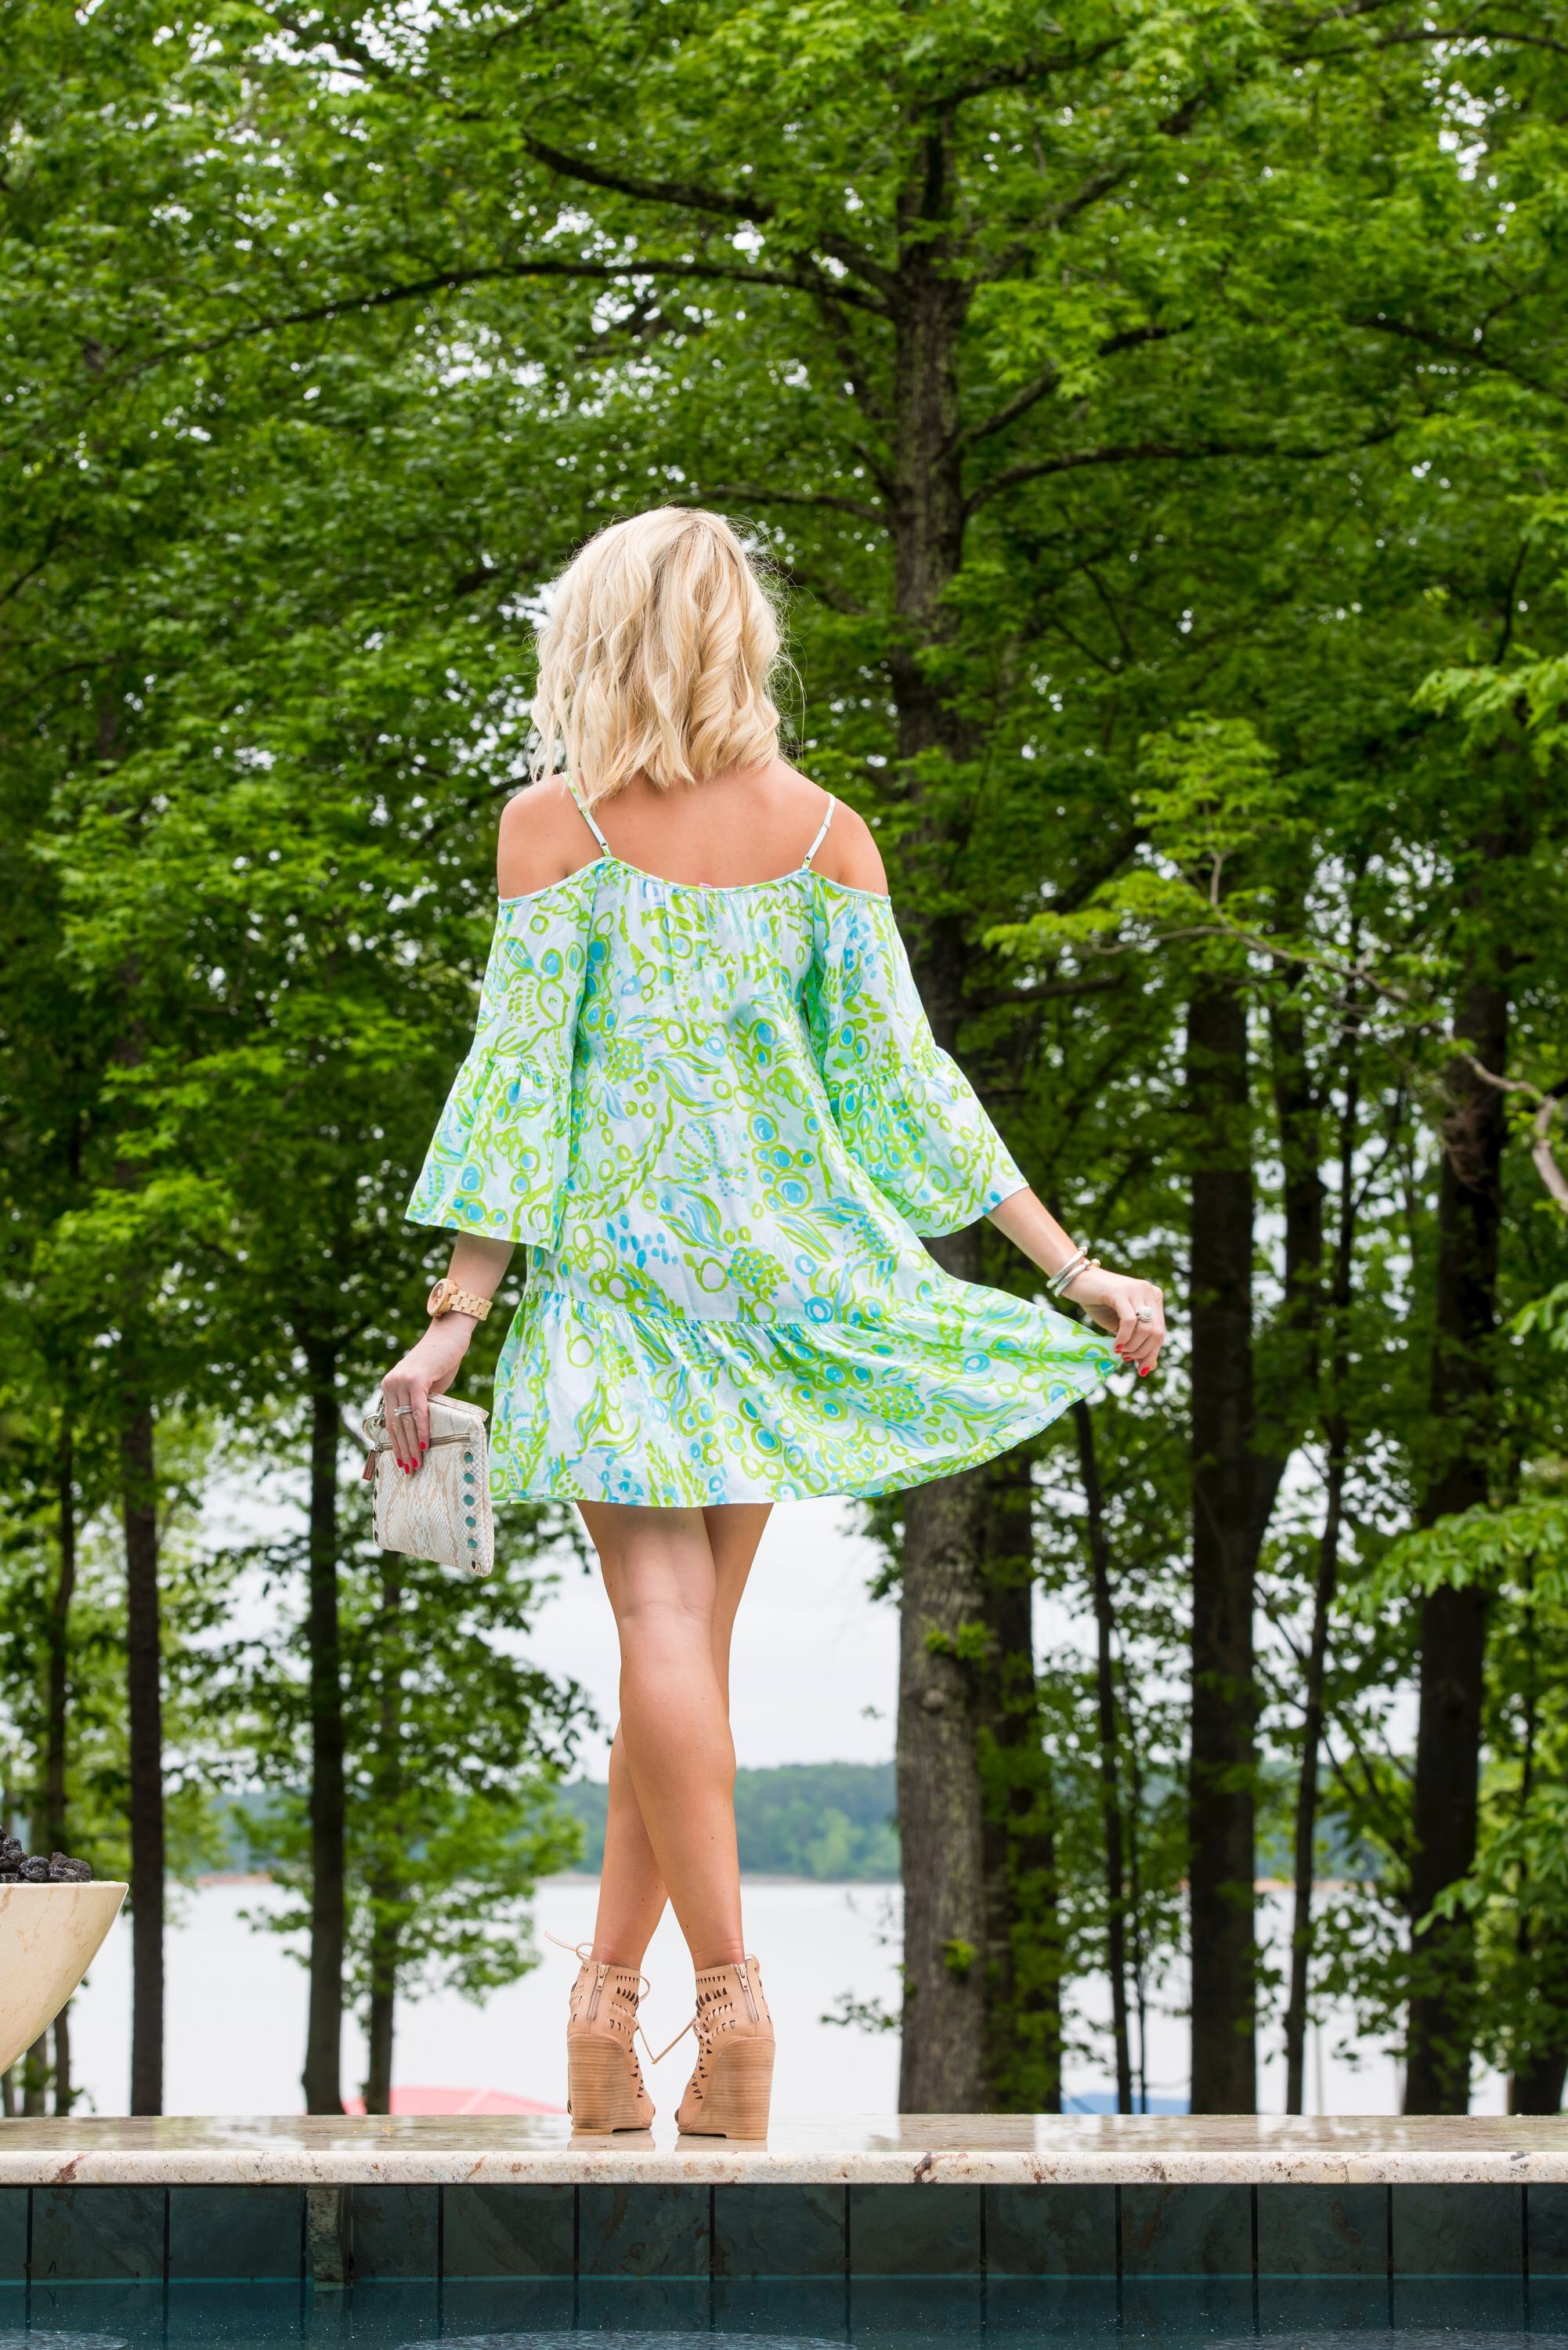 b7b3cf0a3f91a Cold Shoulder Trending with Lilly Pulitzer